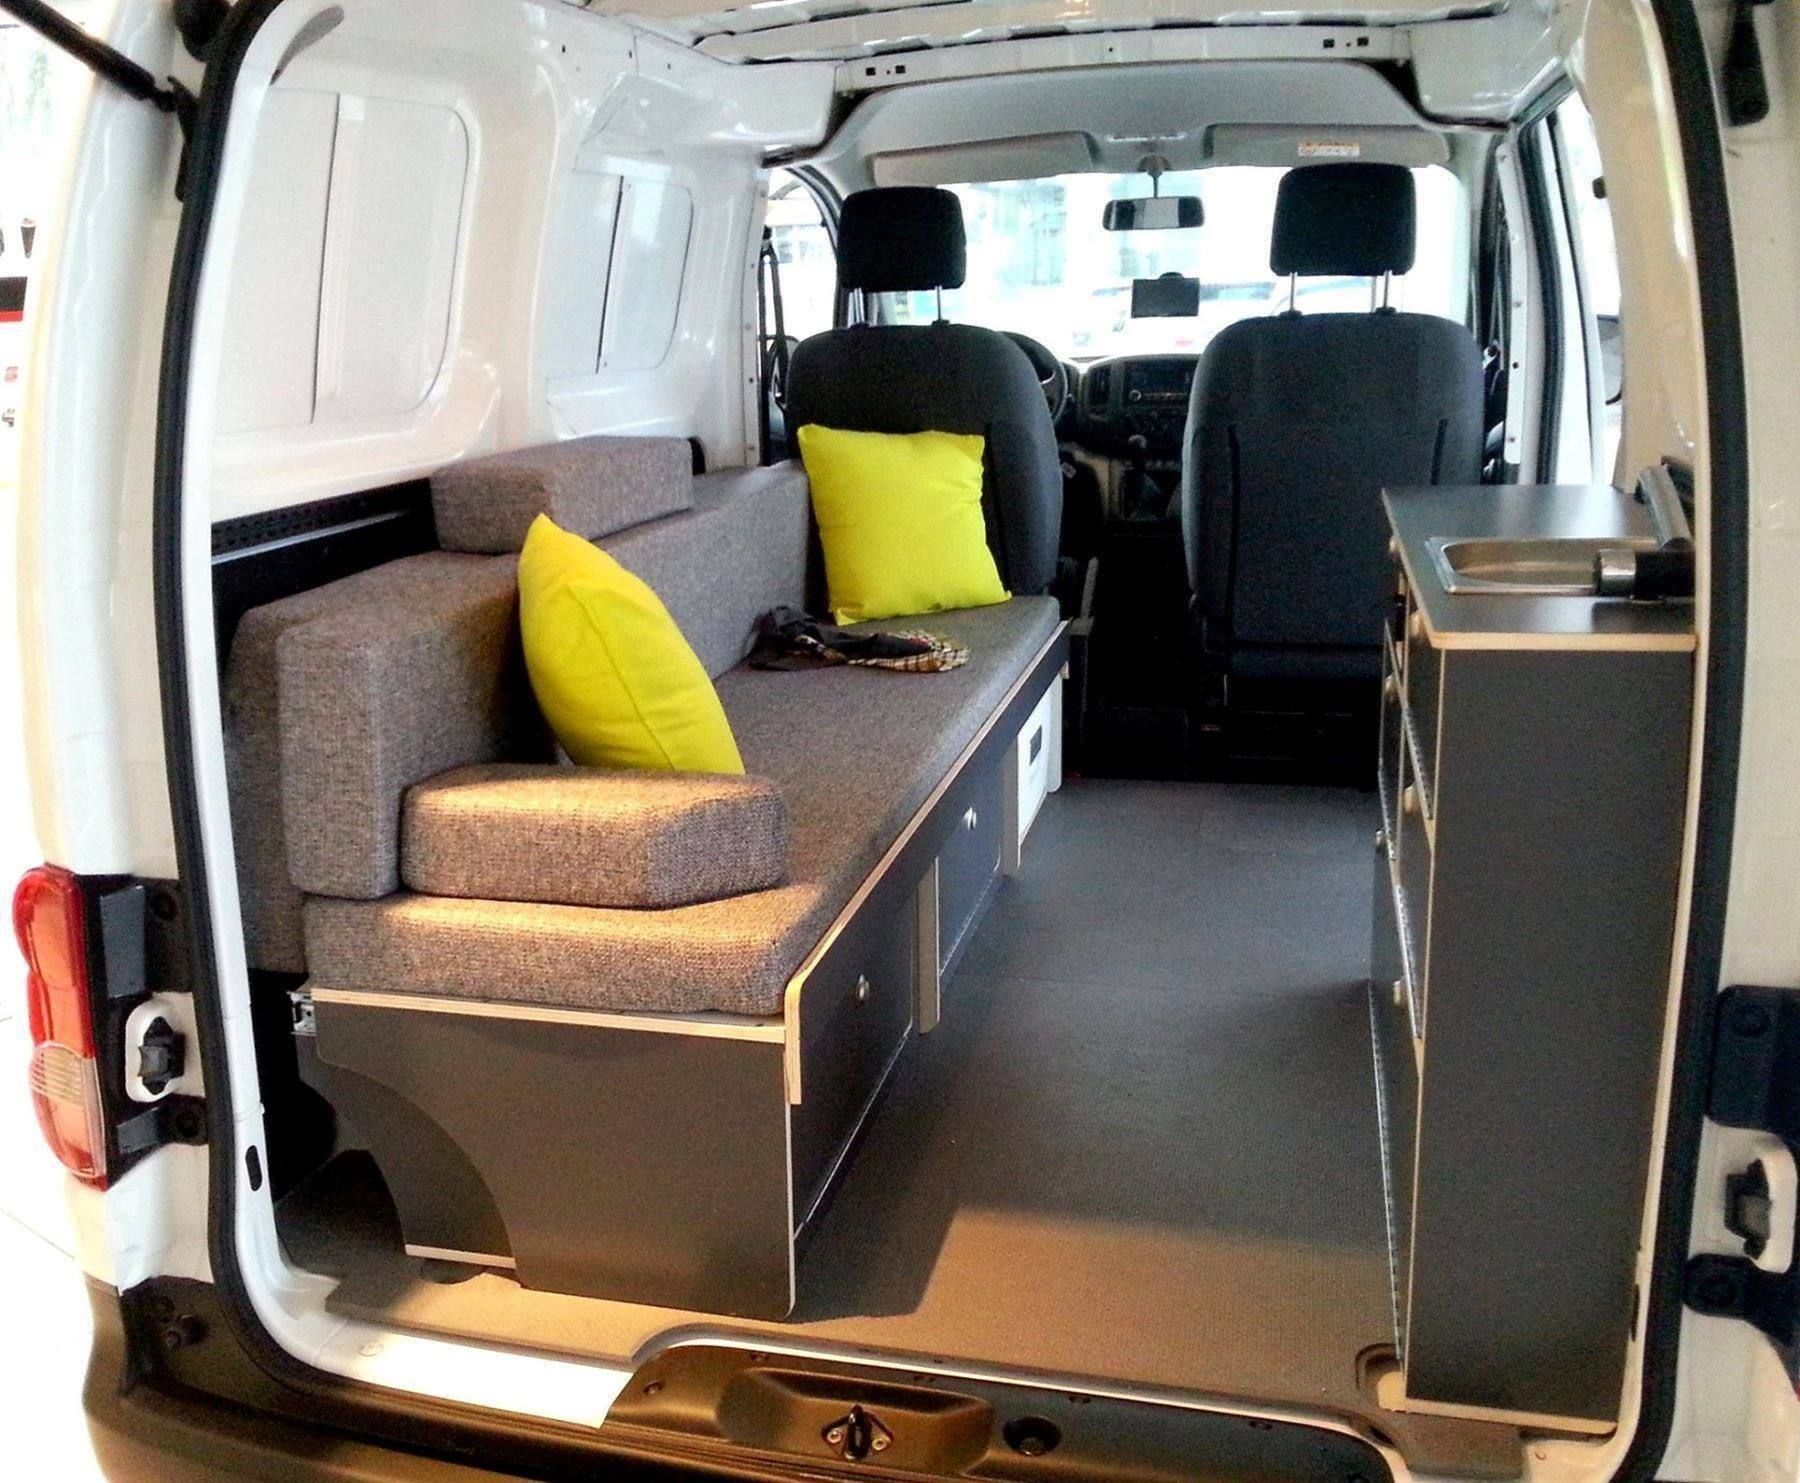 Big Sofa Goodwick Bett Sofa Für Nissan Nv200 Mini Camper 25 05 2016 10 29 00 1